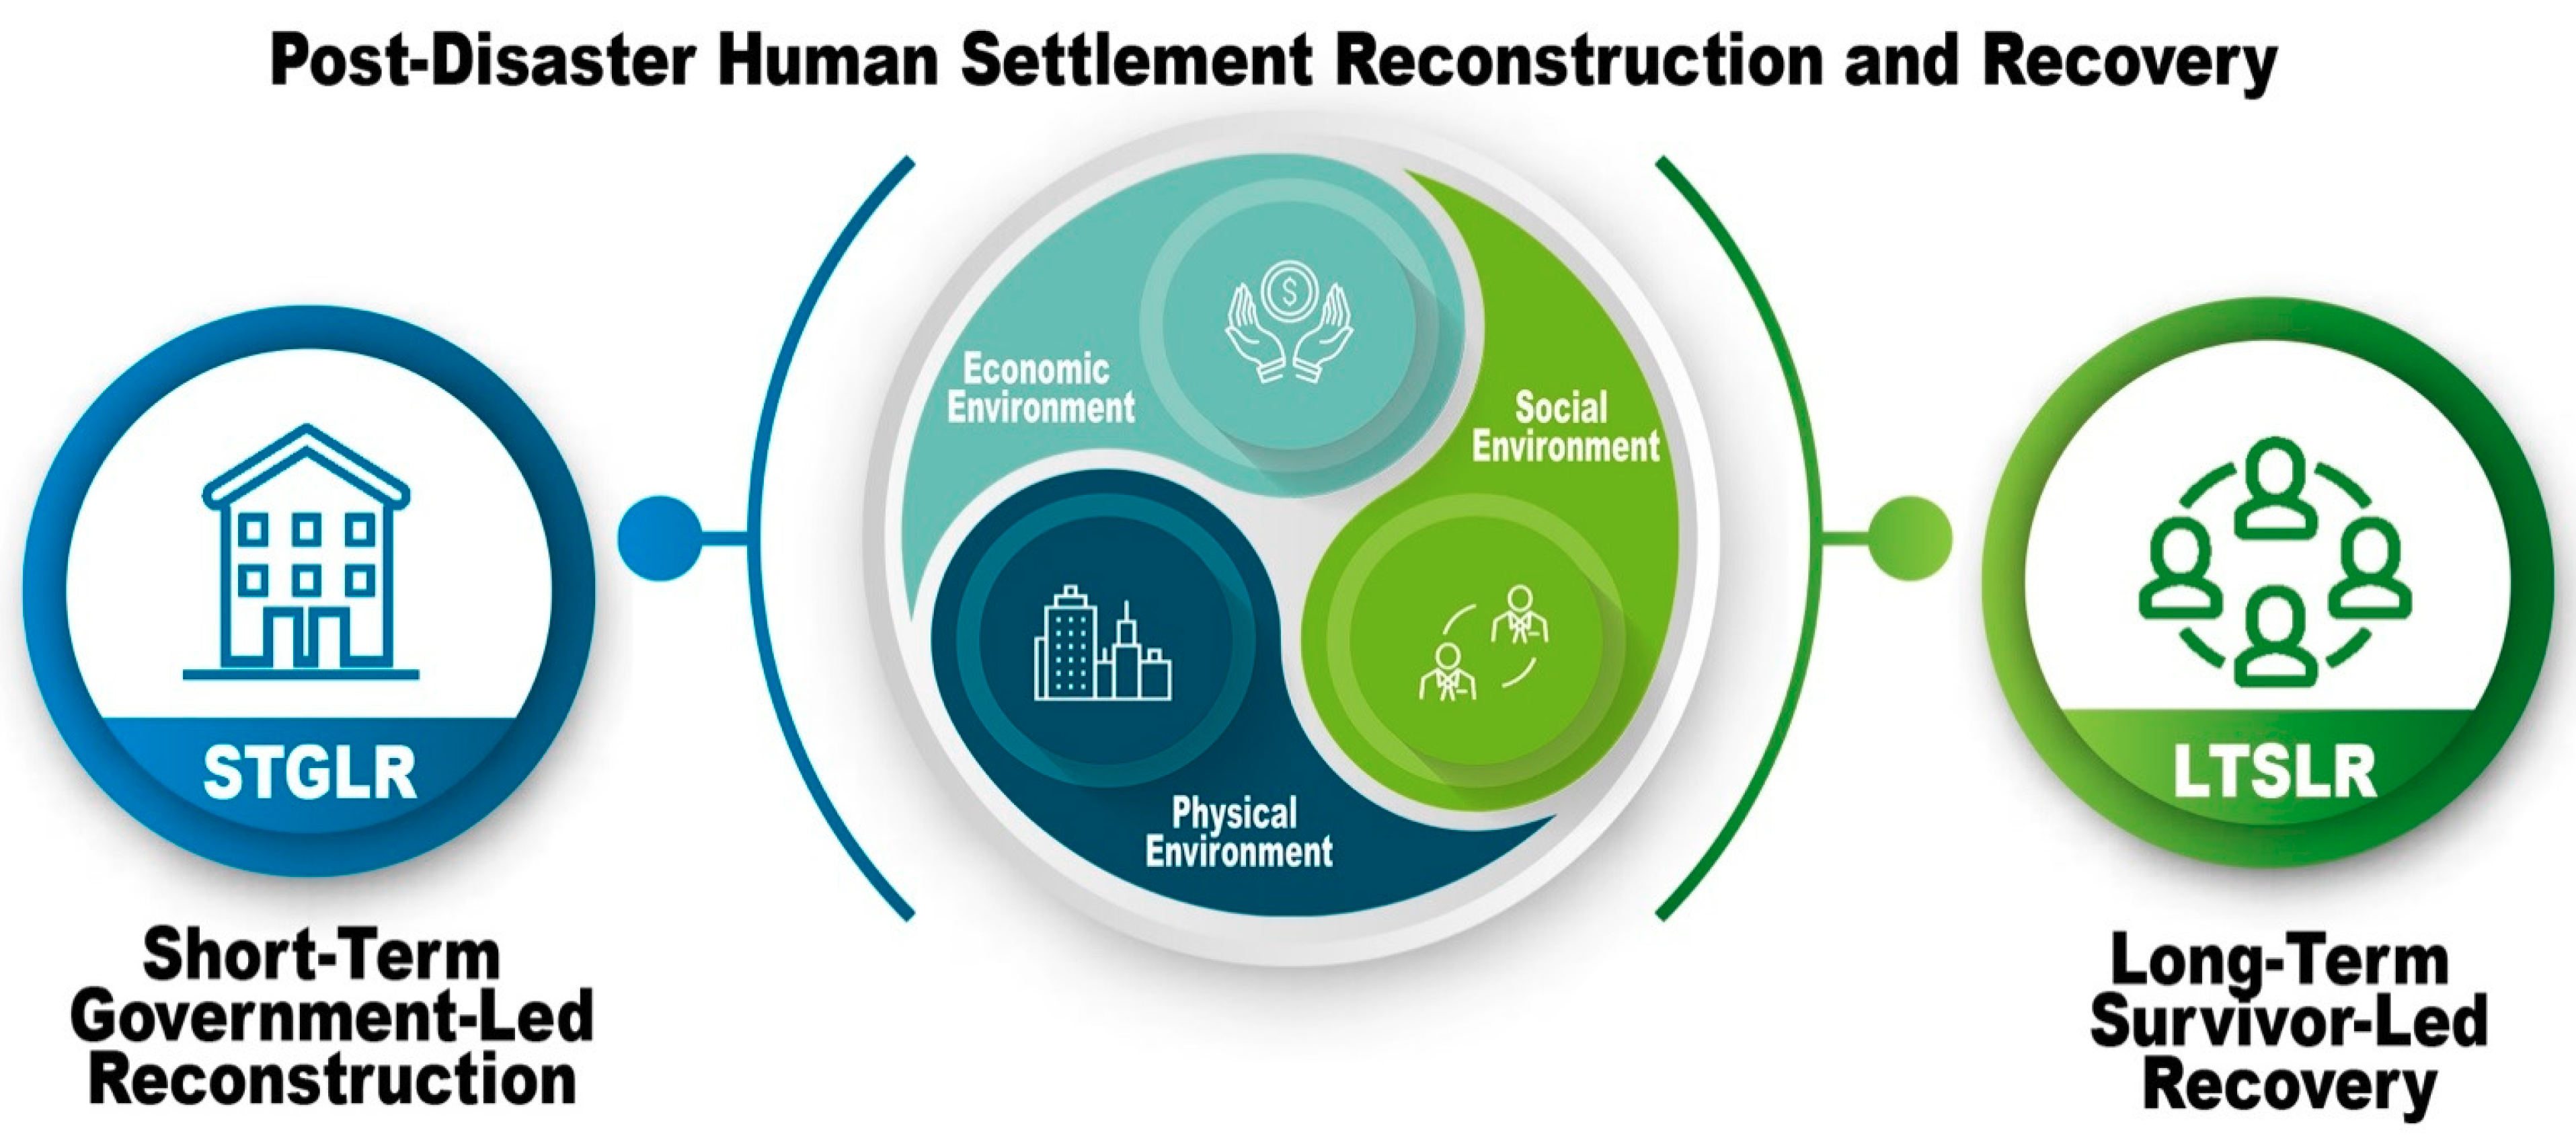 Sustainability Free Full Text When Housing And Communities Were Delivered A Case Study Of Post Wenchuan Earthquake Rural Reconstruction And Recovery Html